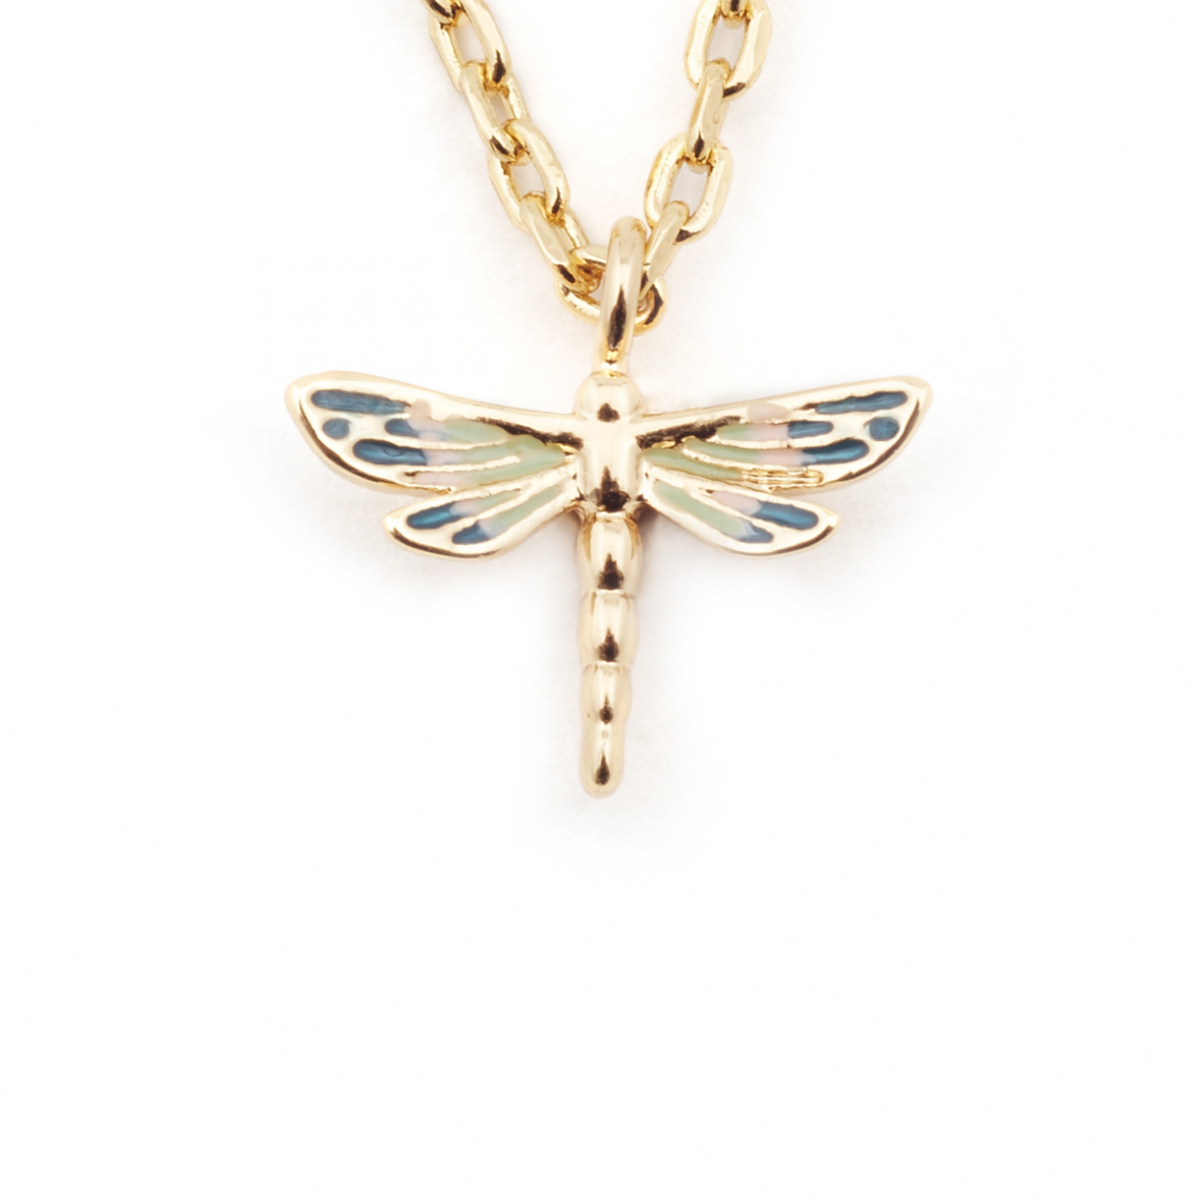 pendants en necklaces lib est black zirconia pandora dragonfly pendant necklace